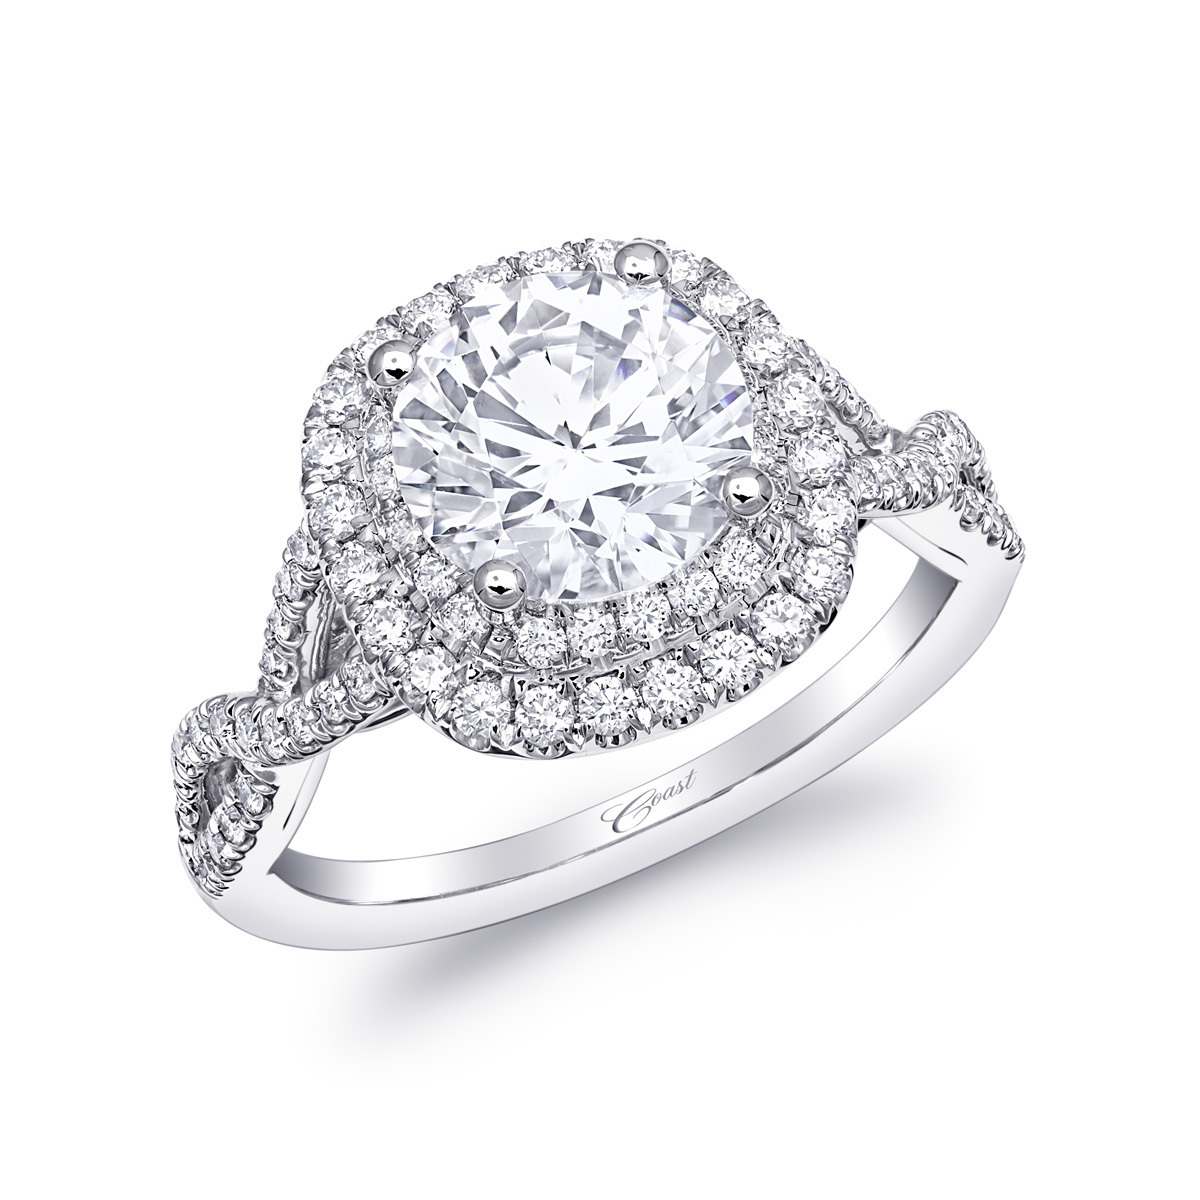 Charisma Engagement Ring - Double Halo Twist Shank